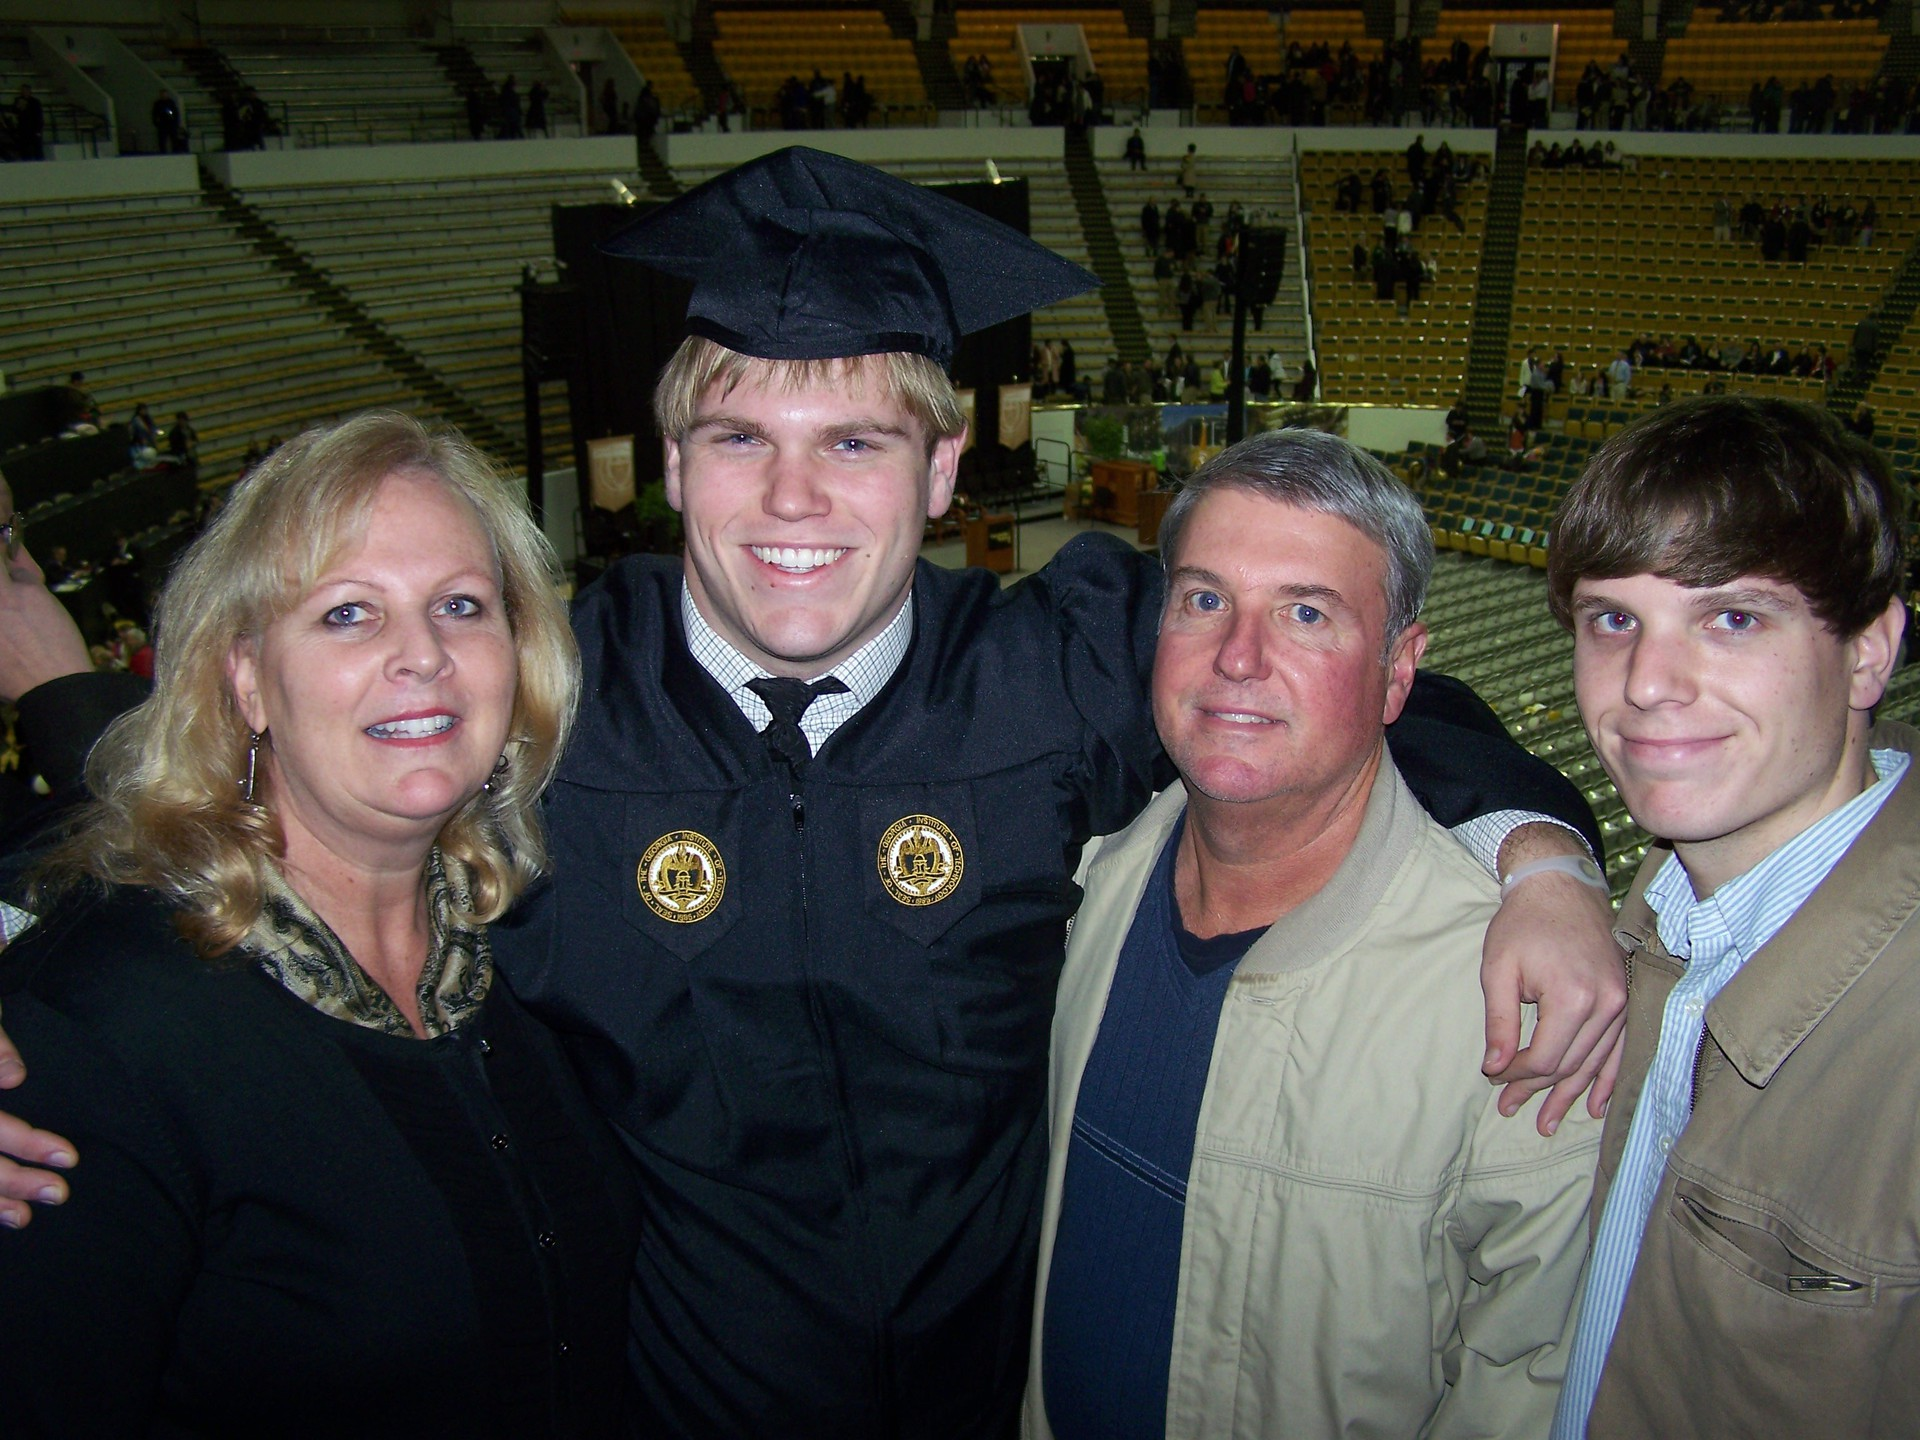 Caleb Mock, our son, college graduation